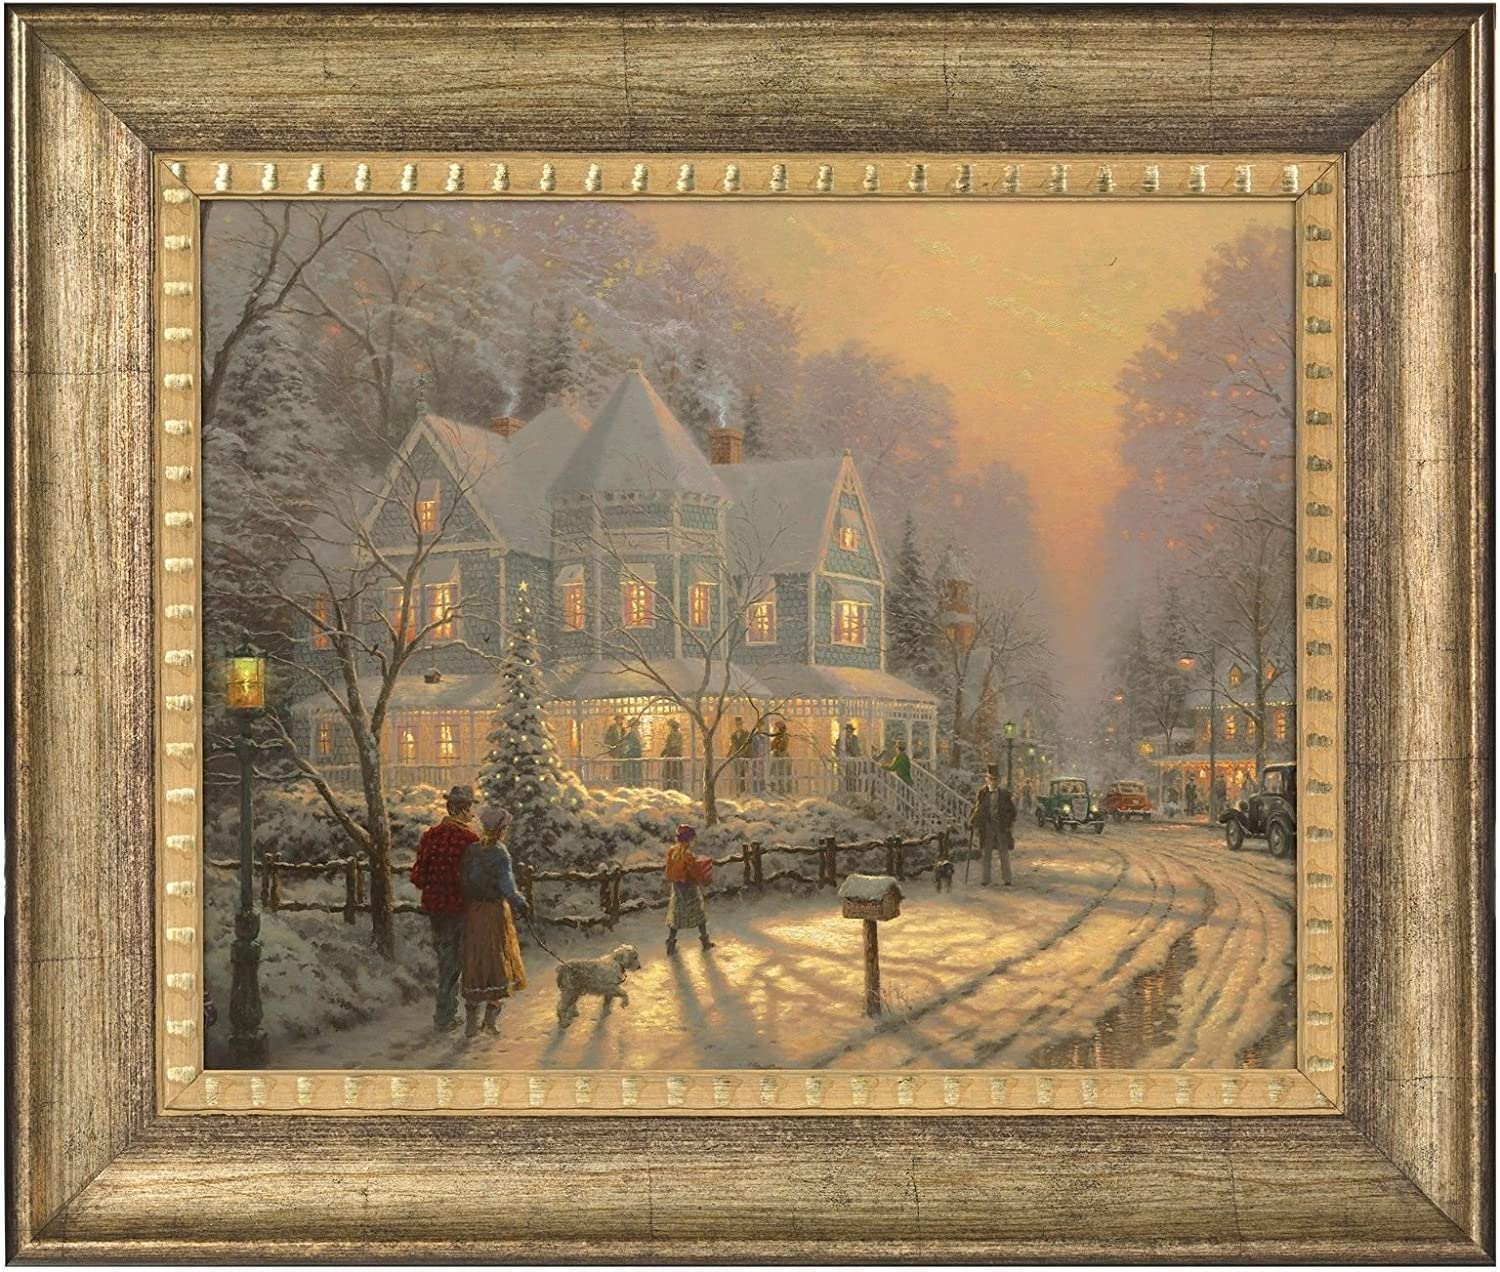 Amazon Com Thomas Kinkade A Holiday Gathering 16 X 20 Brushstroke Vignette Burnished Gold Posters Prints